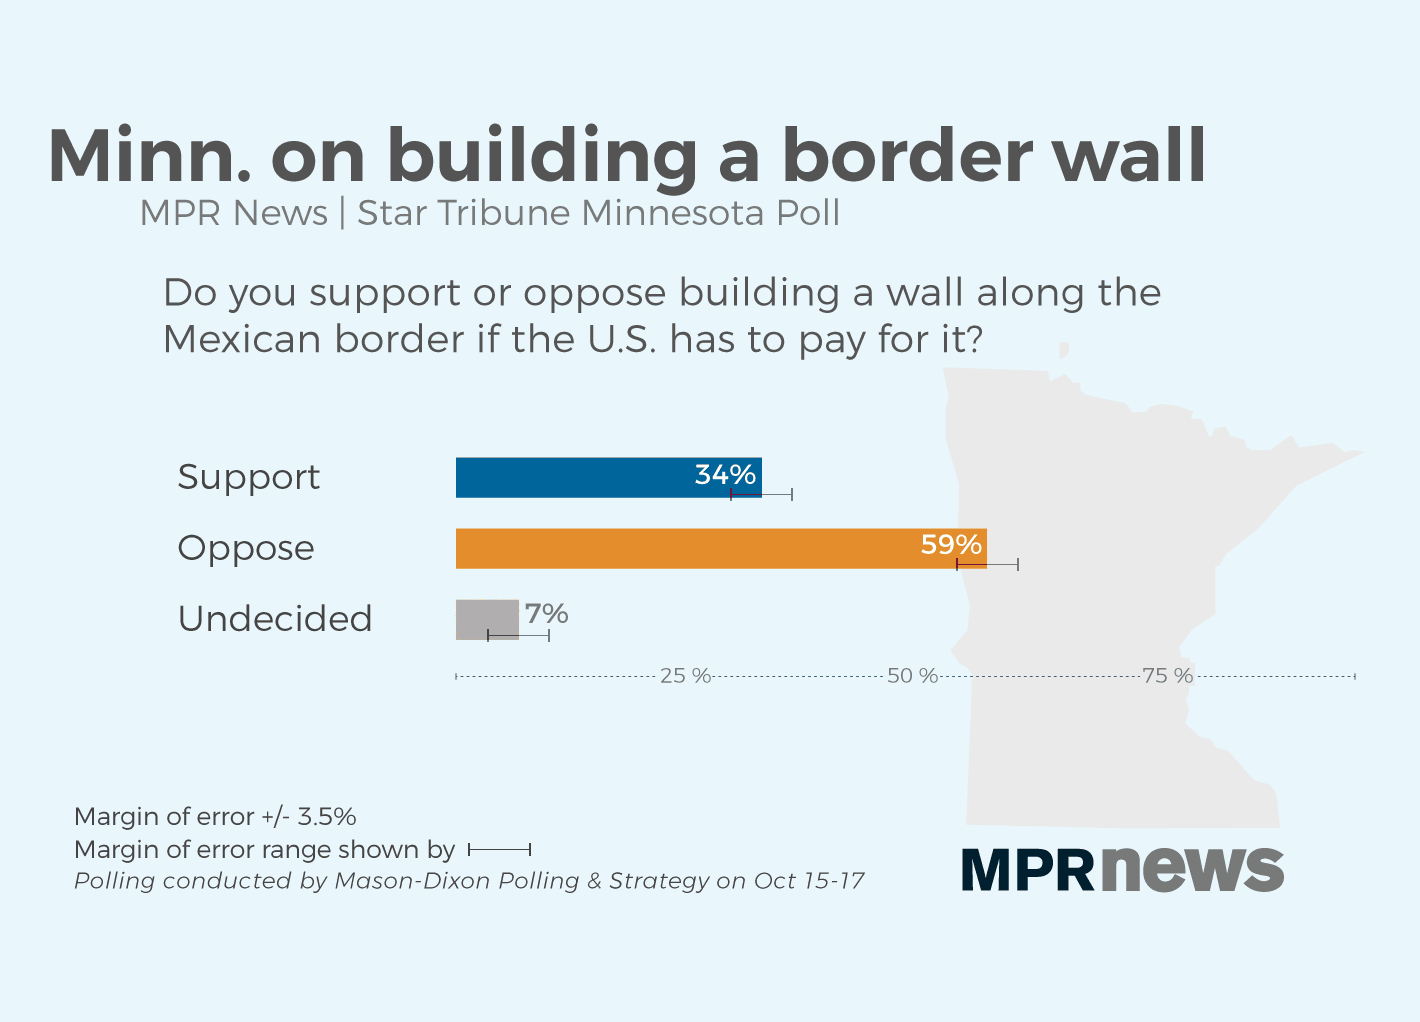 More Minnesotans oppose building a border wall if the U.S. pays for it.